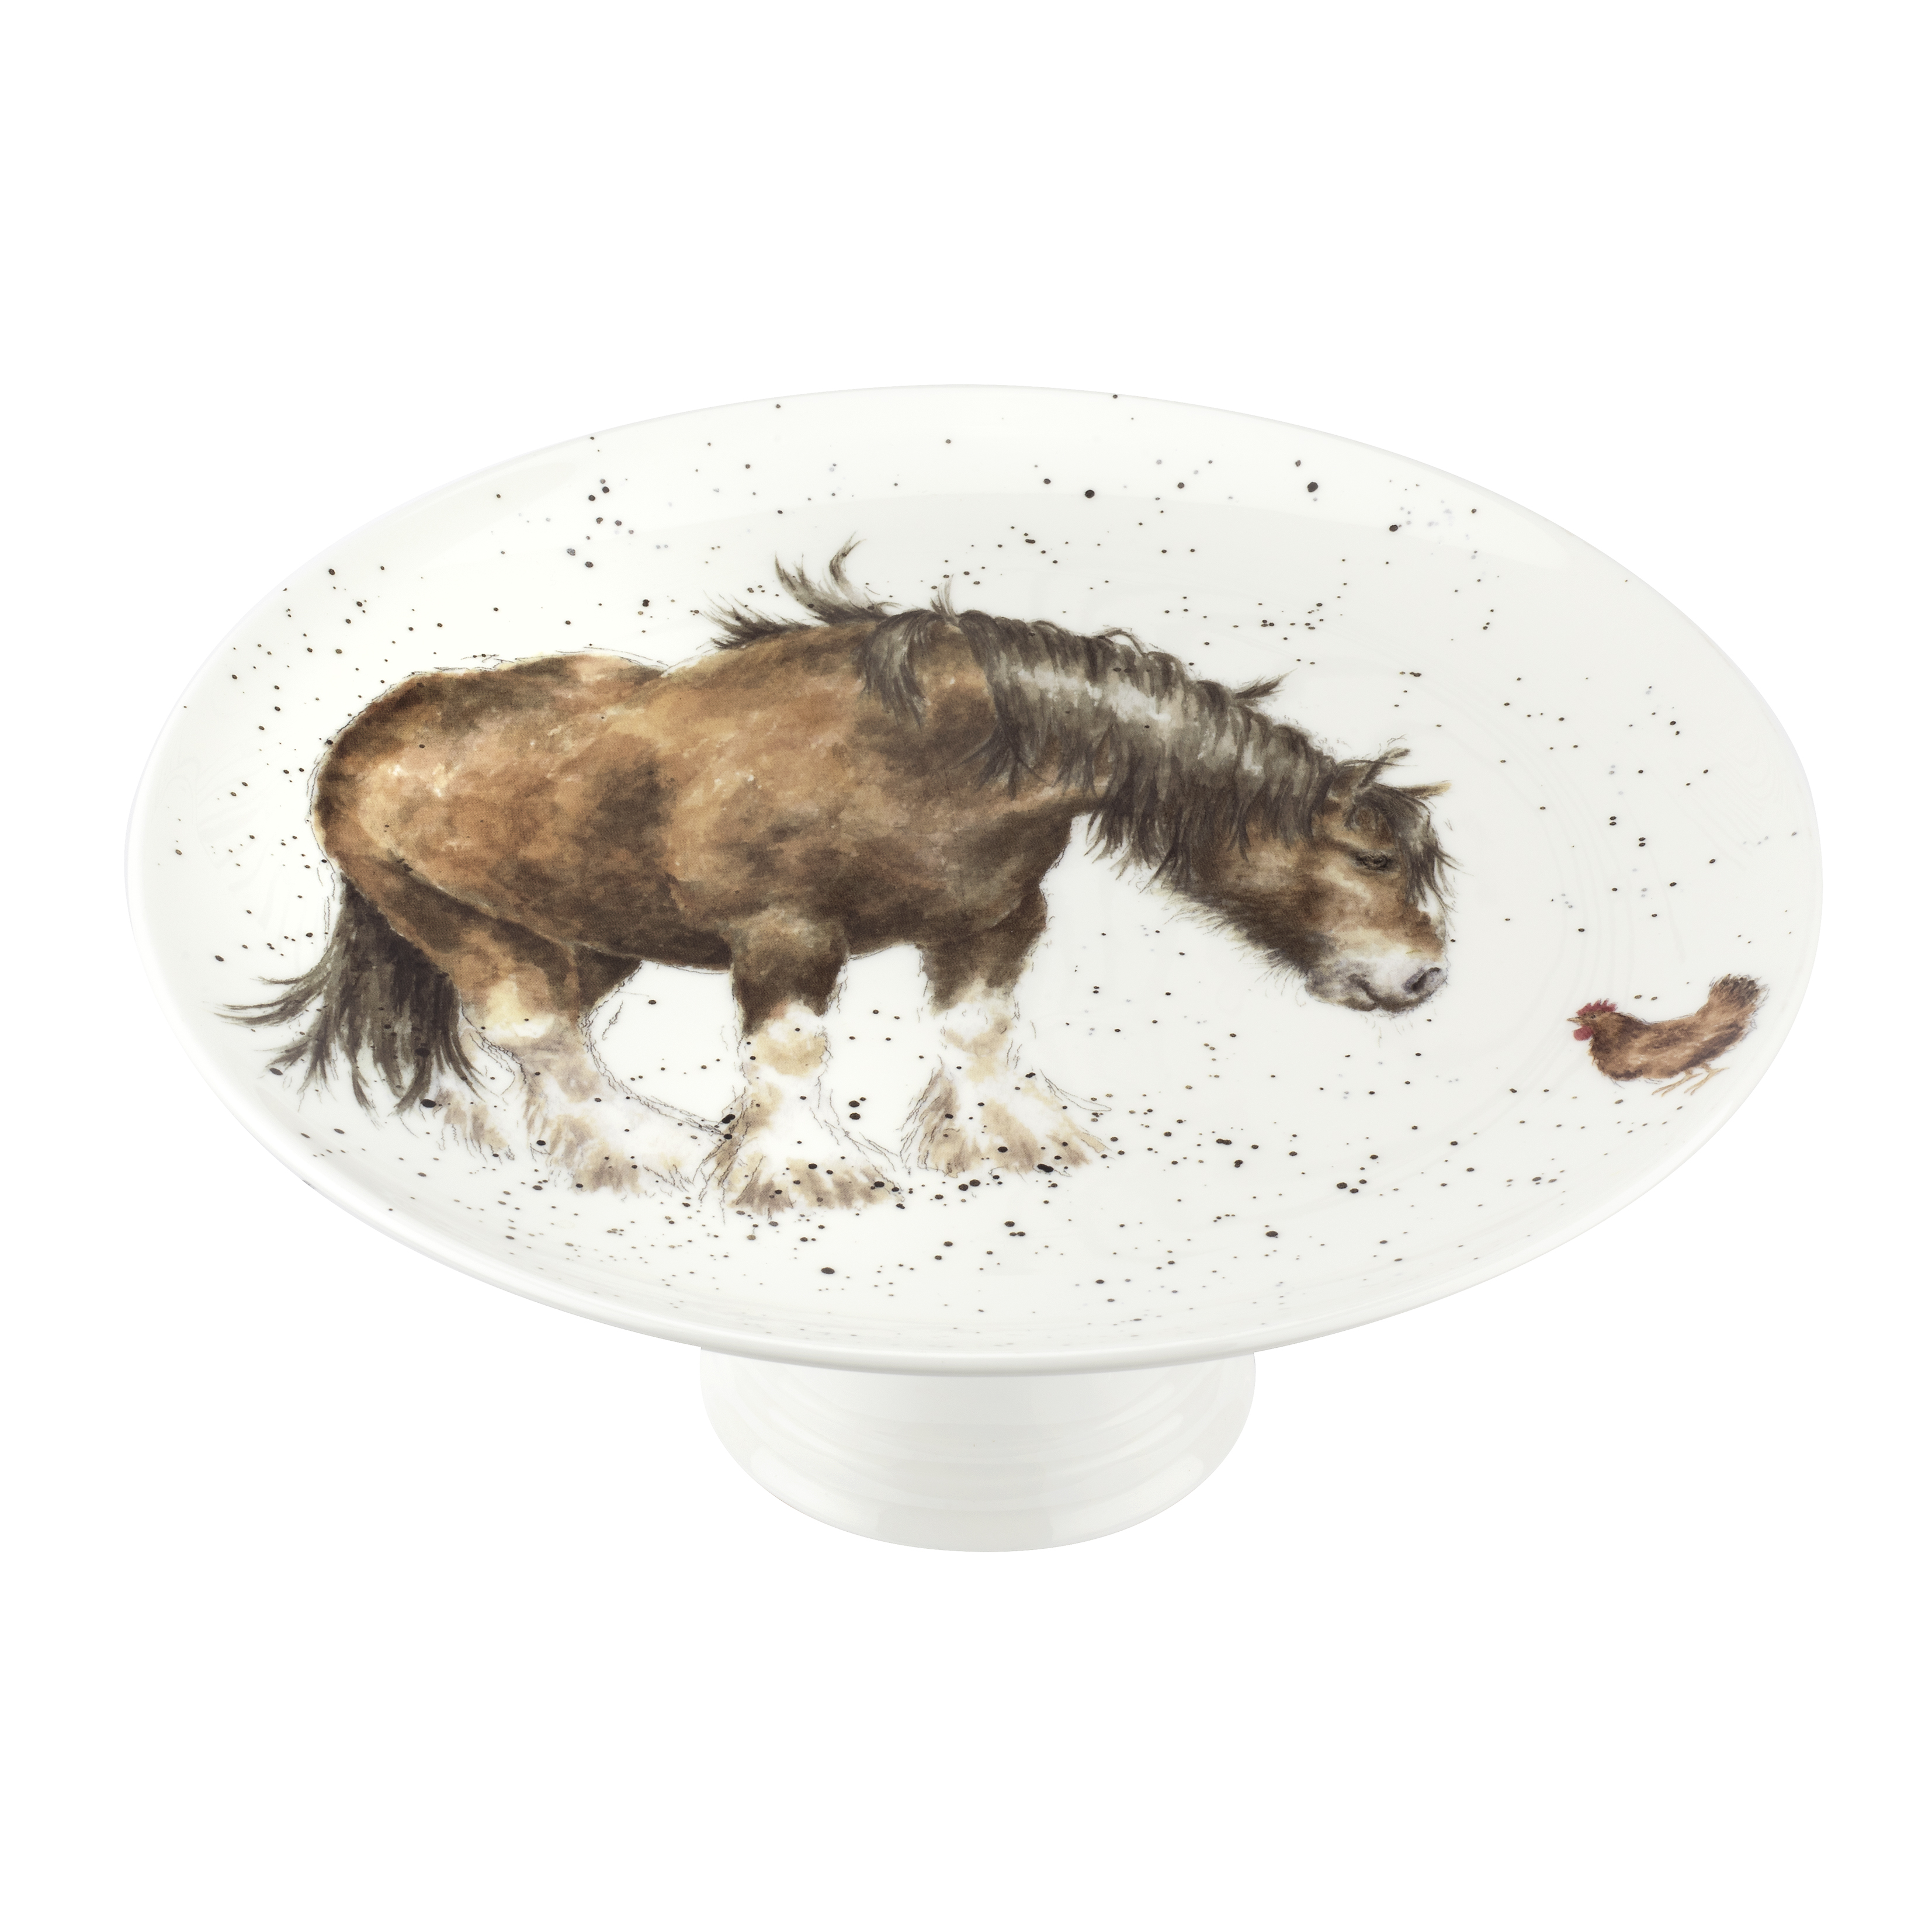 Royal Worcester Wrendale Designs 9.75 Inch Footed Cake Plate (Farmyard Friends) image number 0